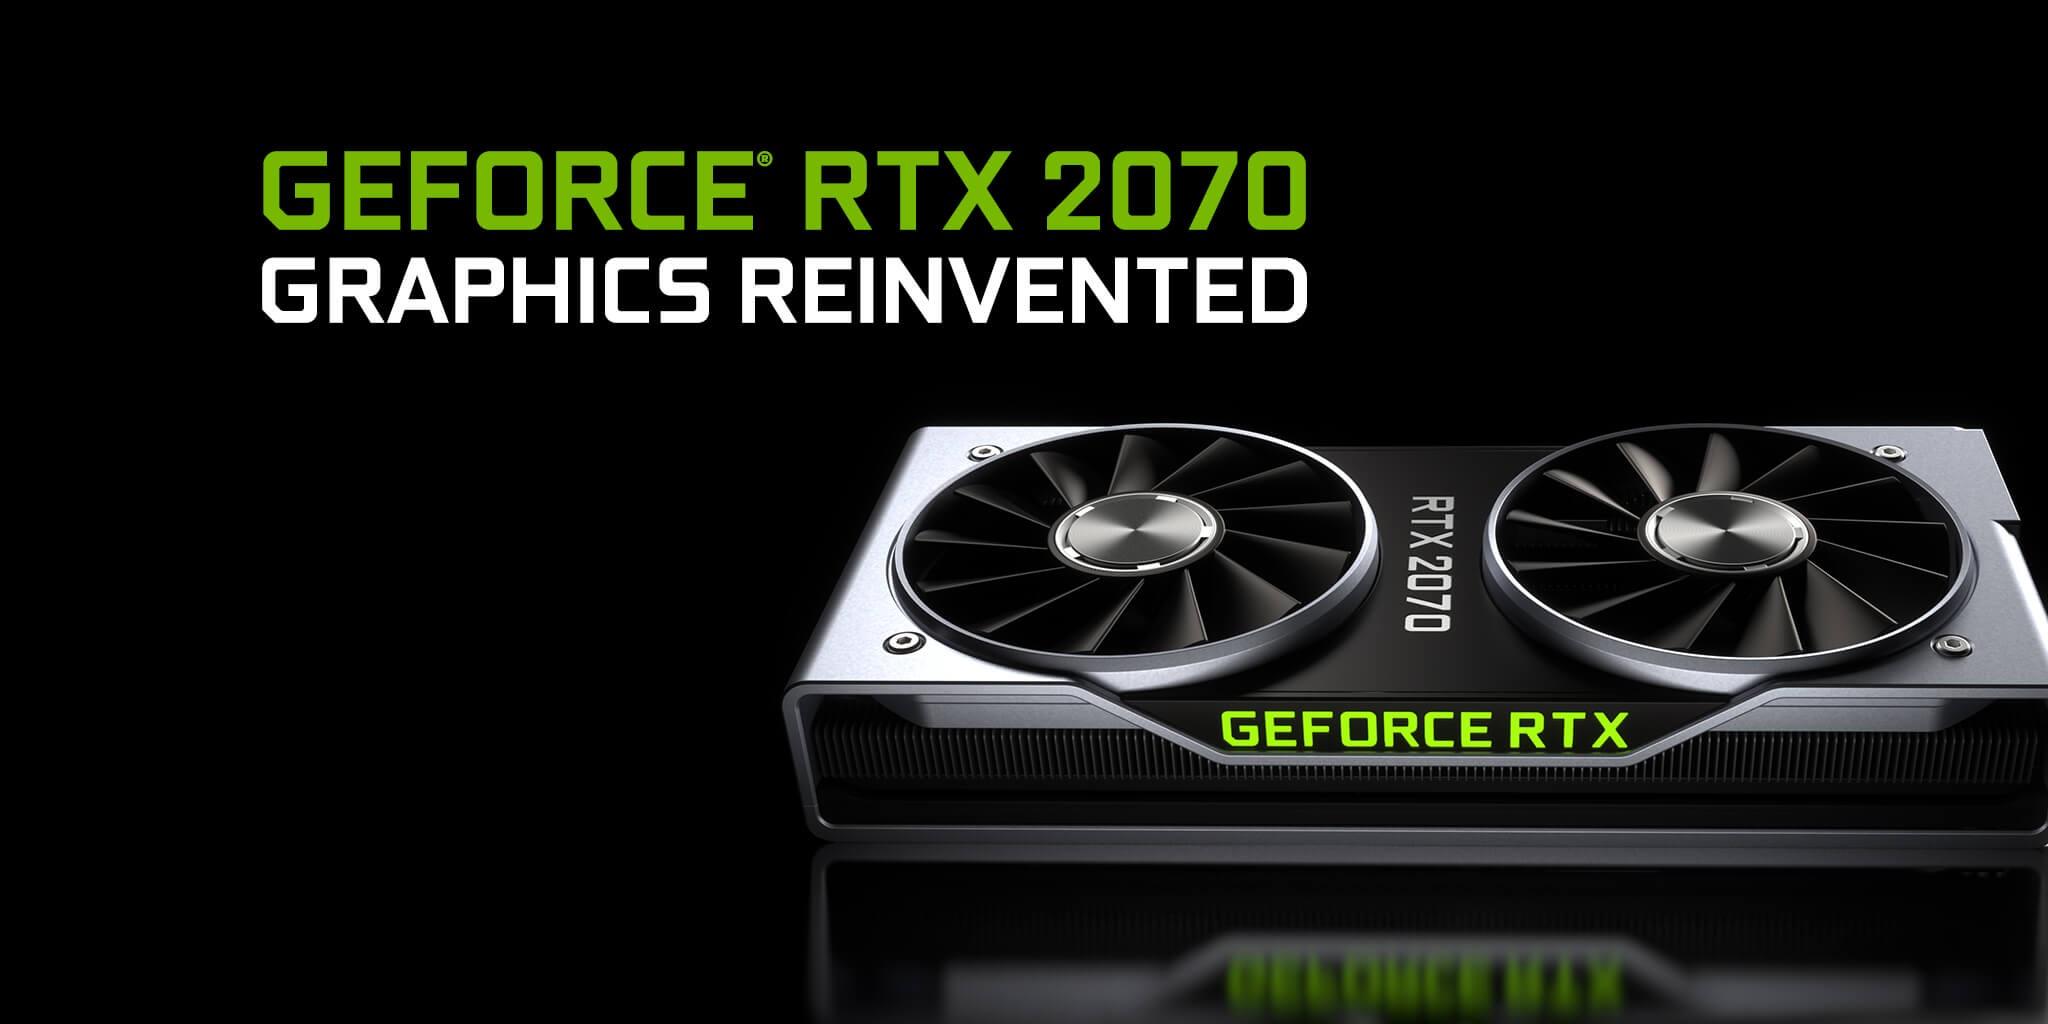 Nvidia geforce rtx 2070 introduction